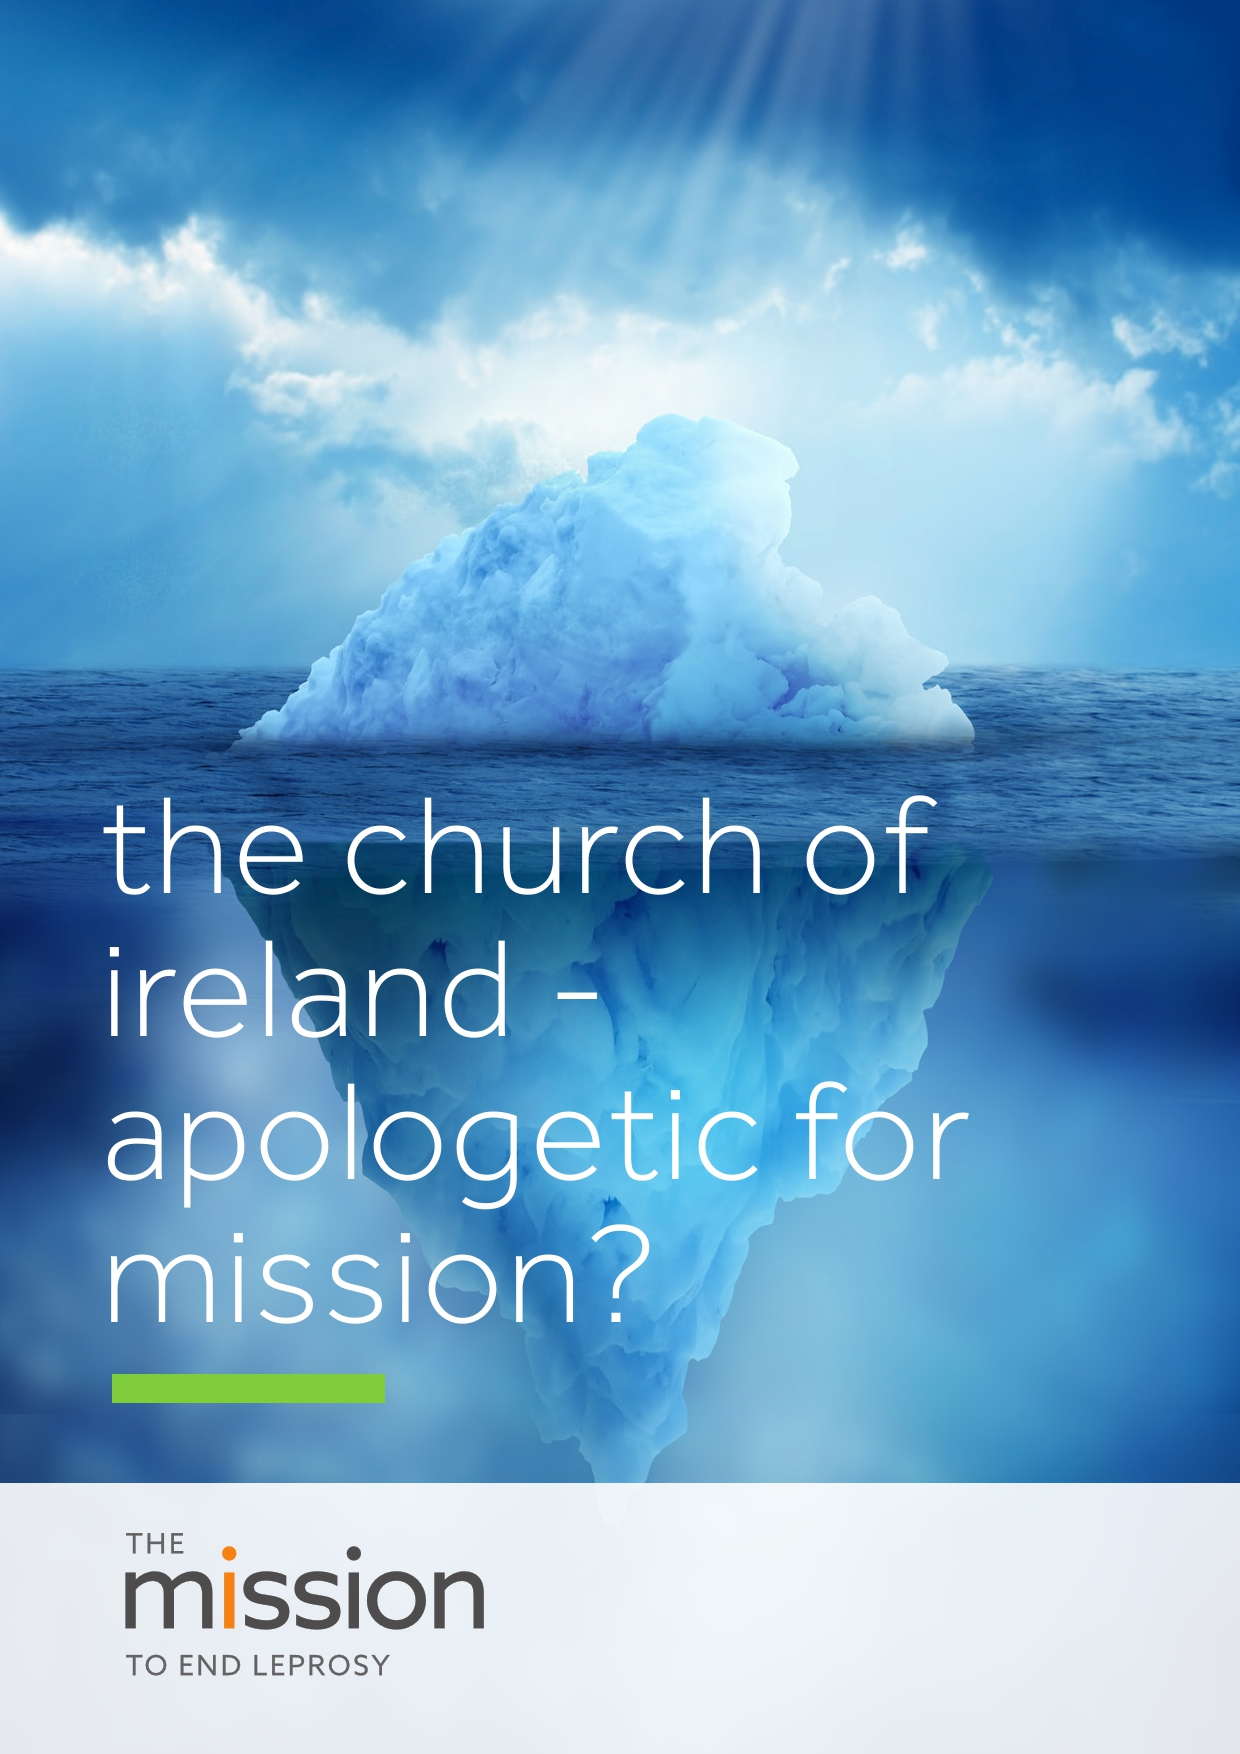 The Church of Ireland - Apologetic for Mission?